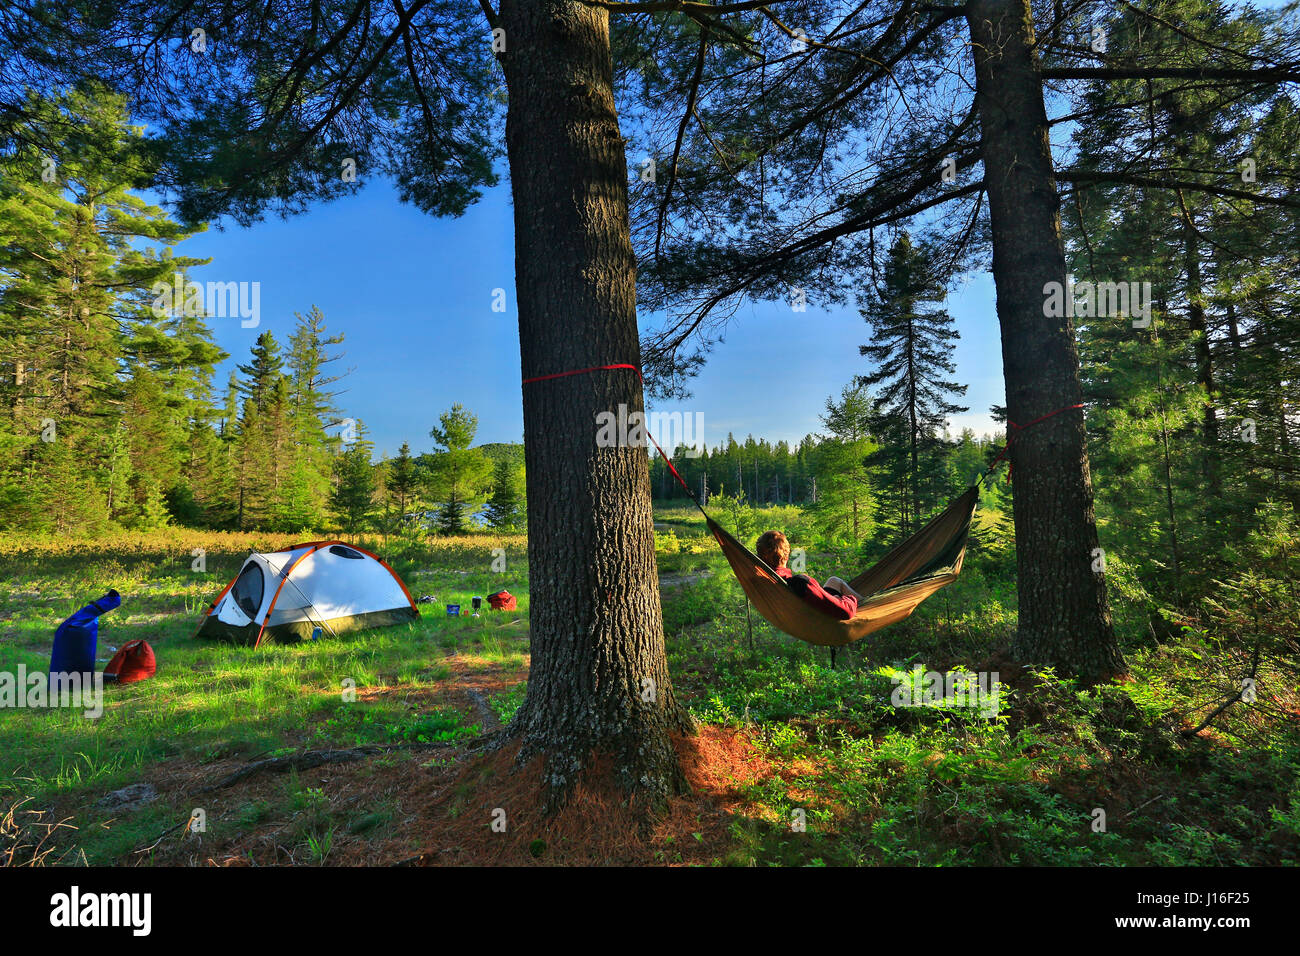 camper lounges on a hammock between two trees at saint regis river new york camper lounges on a hammock between two trees at saint regis river      rh   alamy